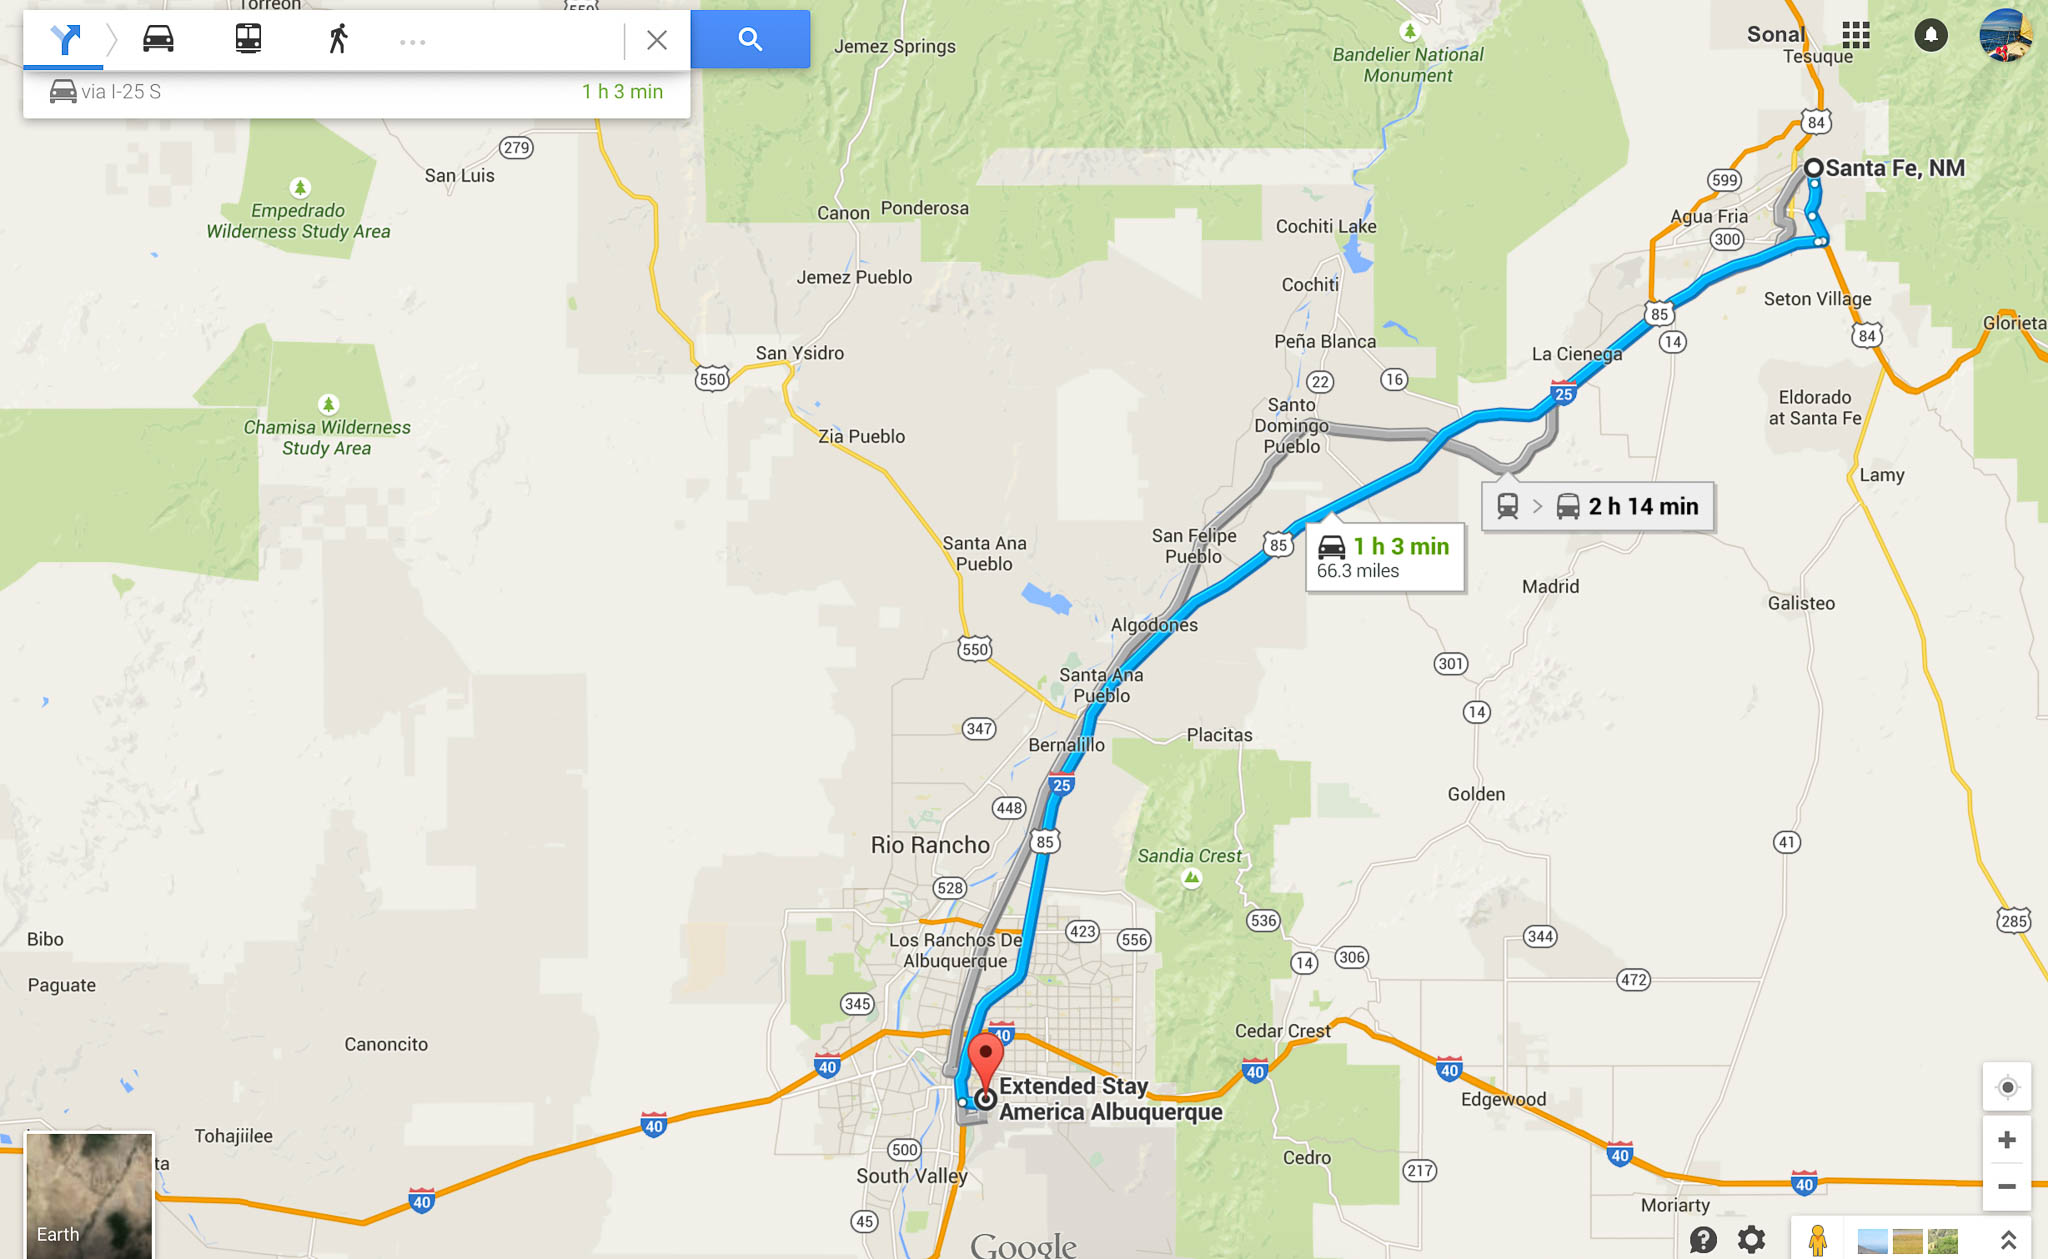 Directions from Santa Fe downtown to Extended Stay in Albuquerque, NM